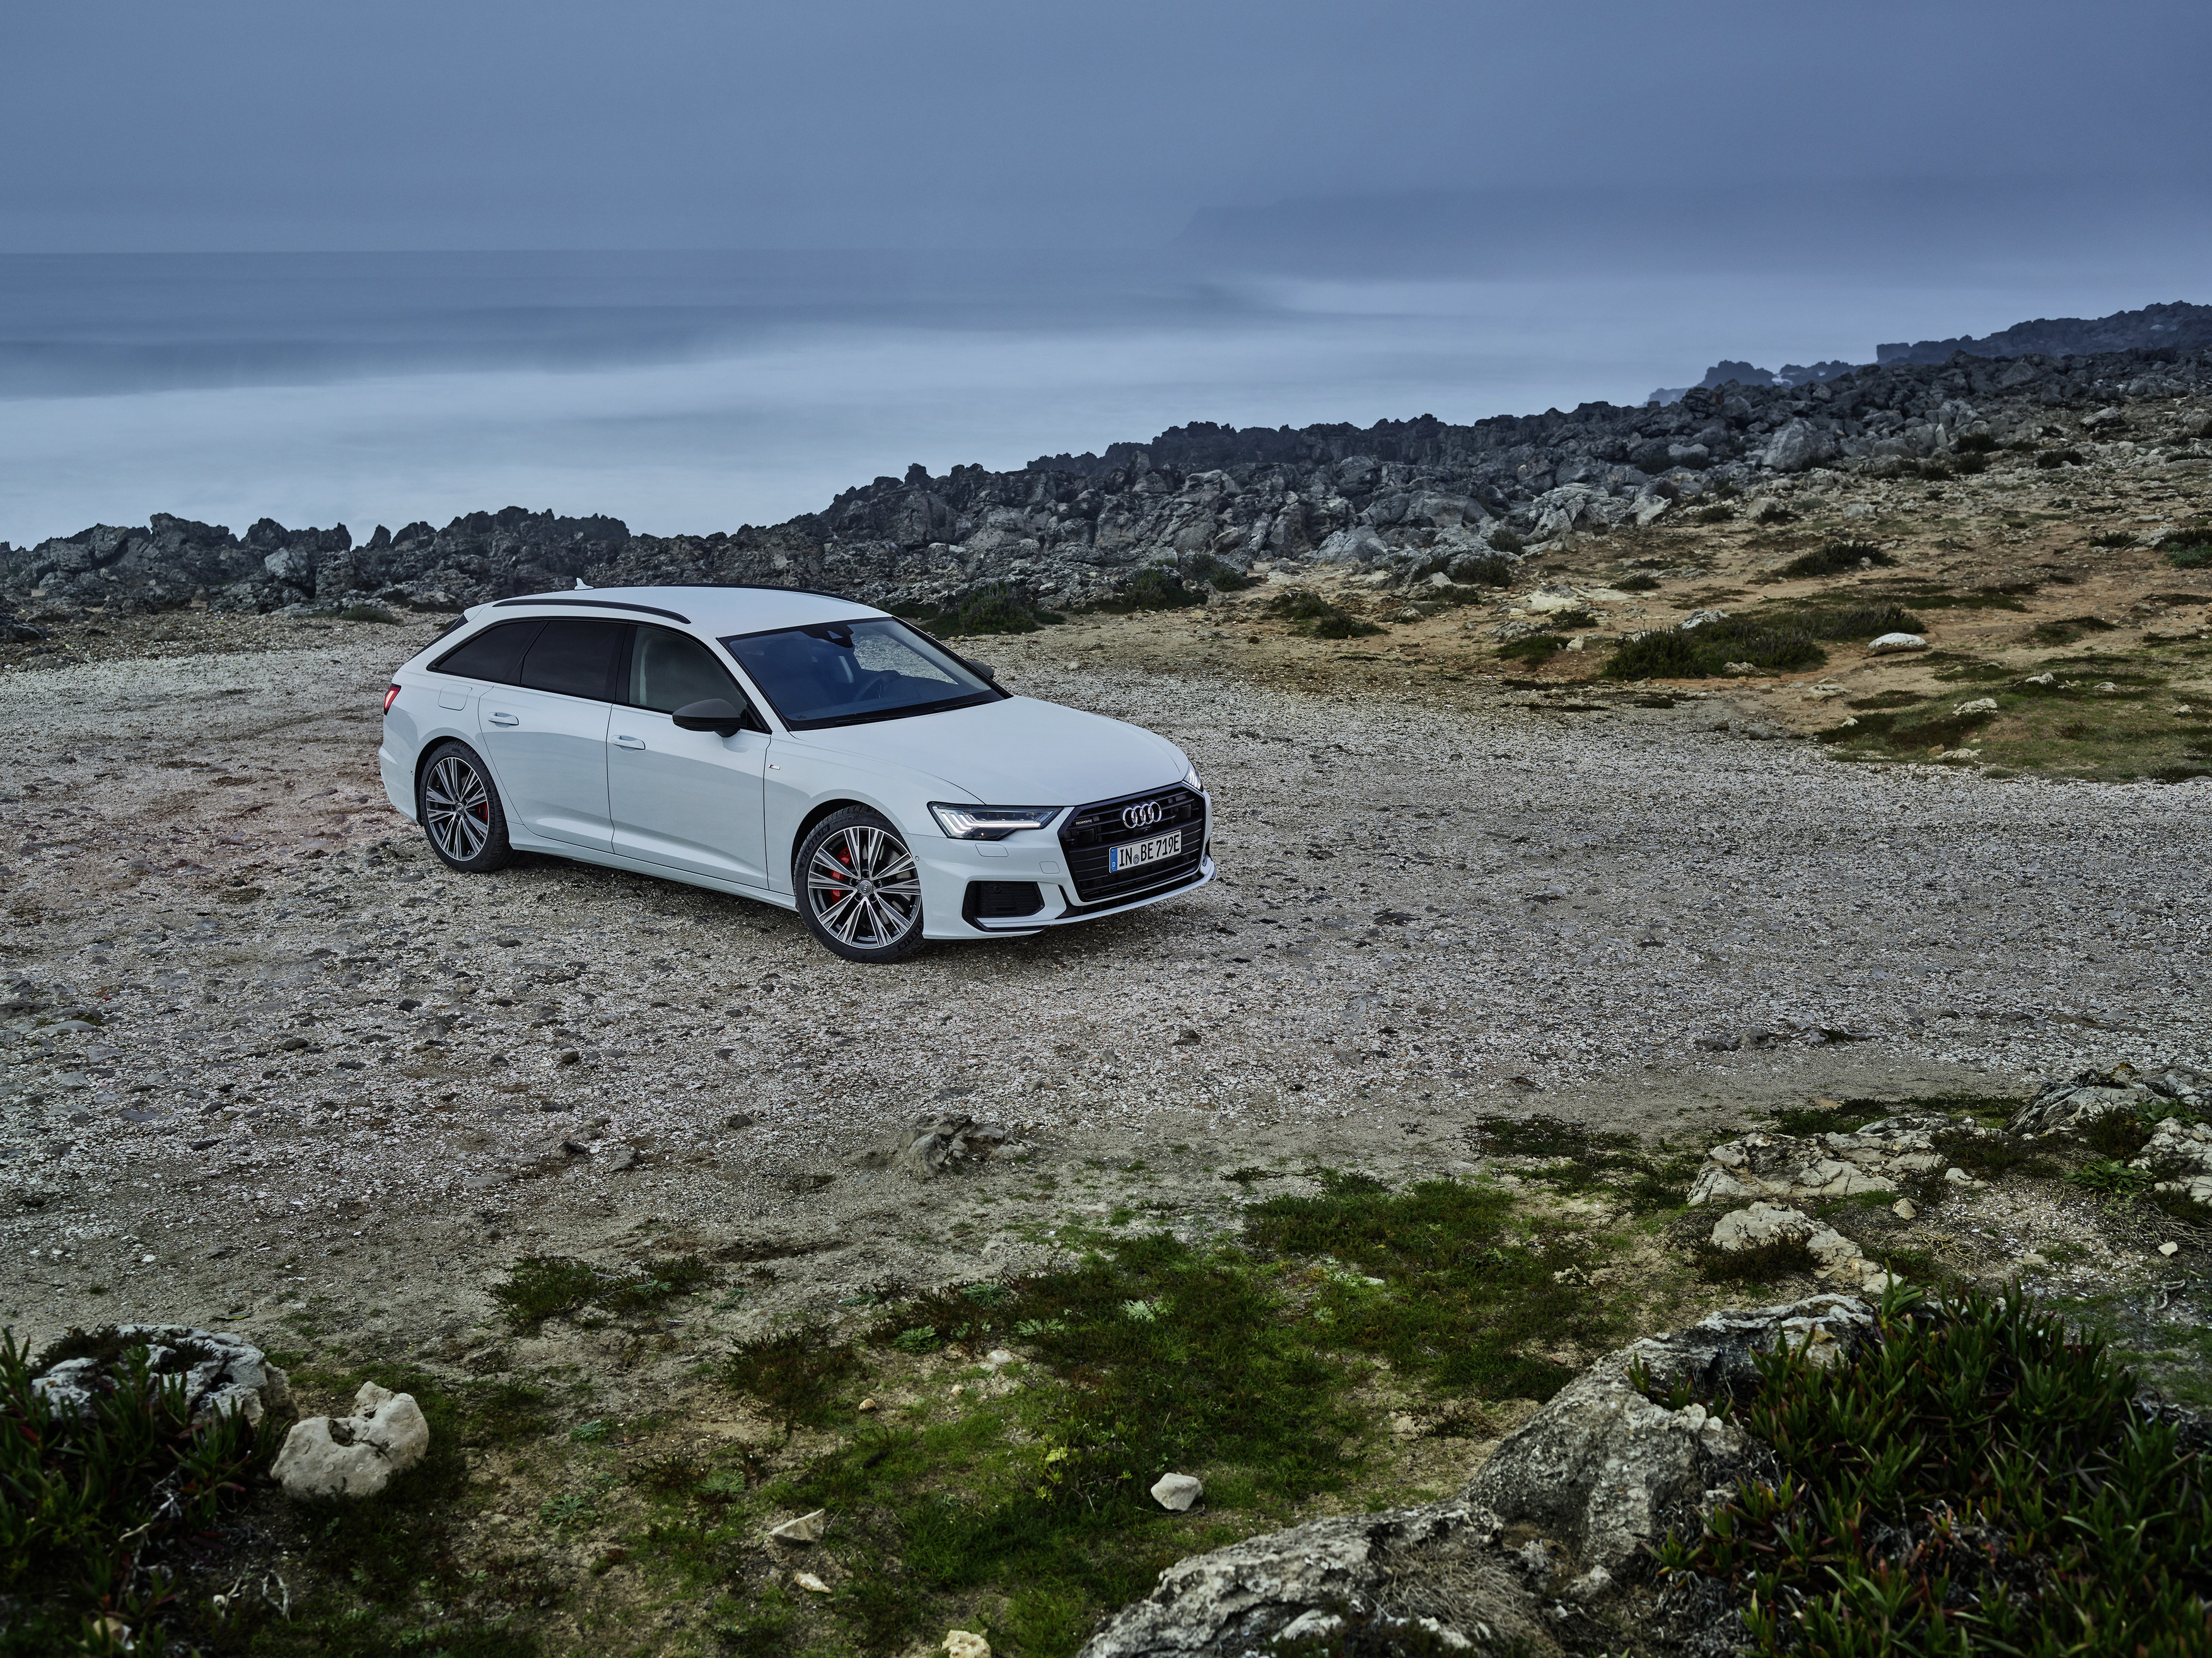 Audi RS By NaplesSpeed And Audi Naples Fourtitudecom - Audi naples